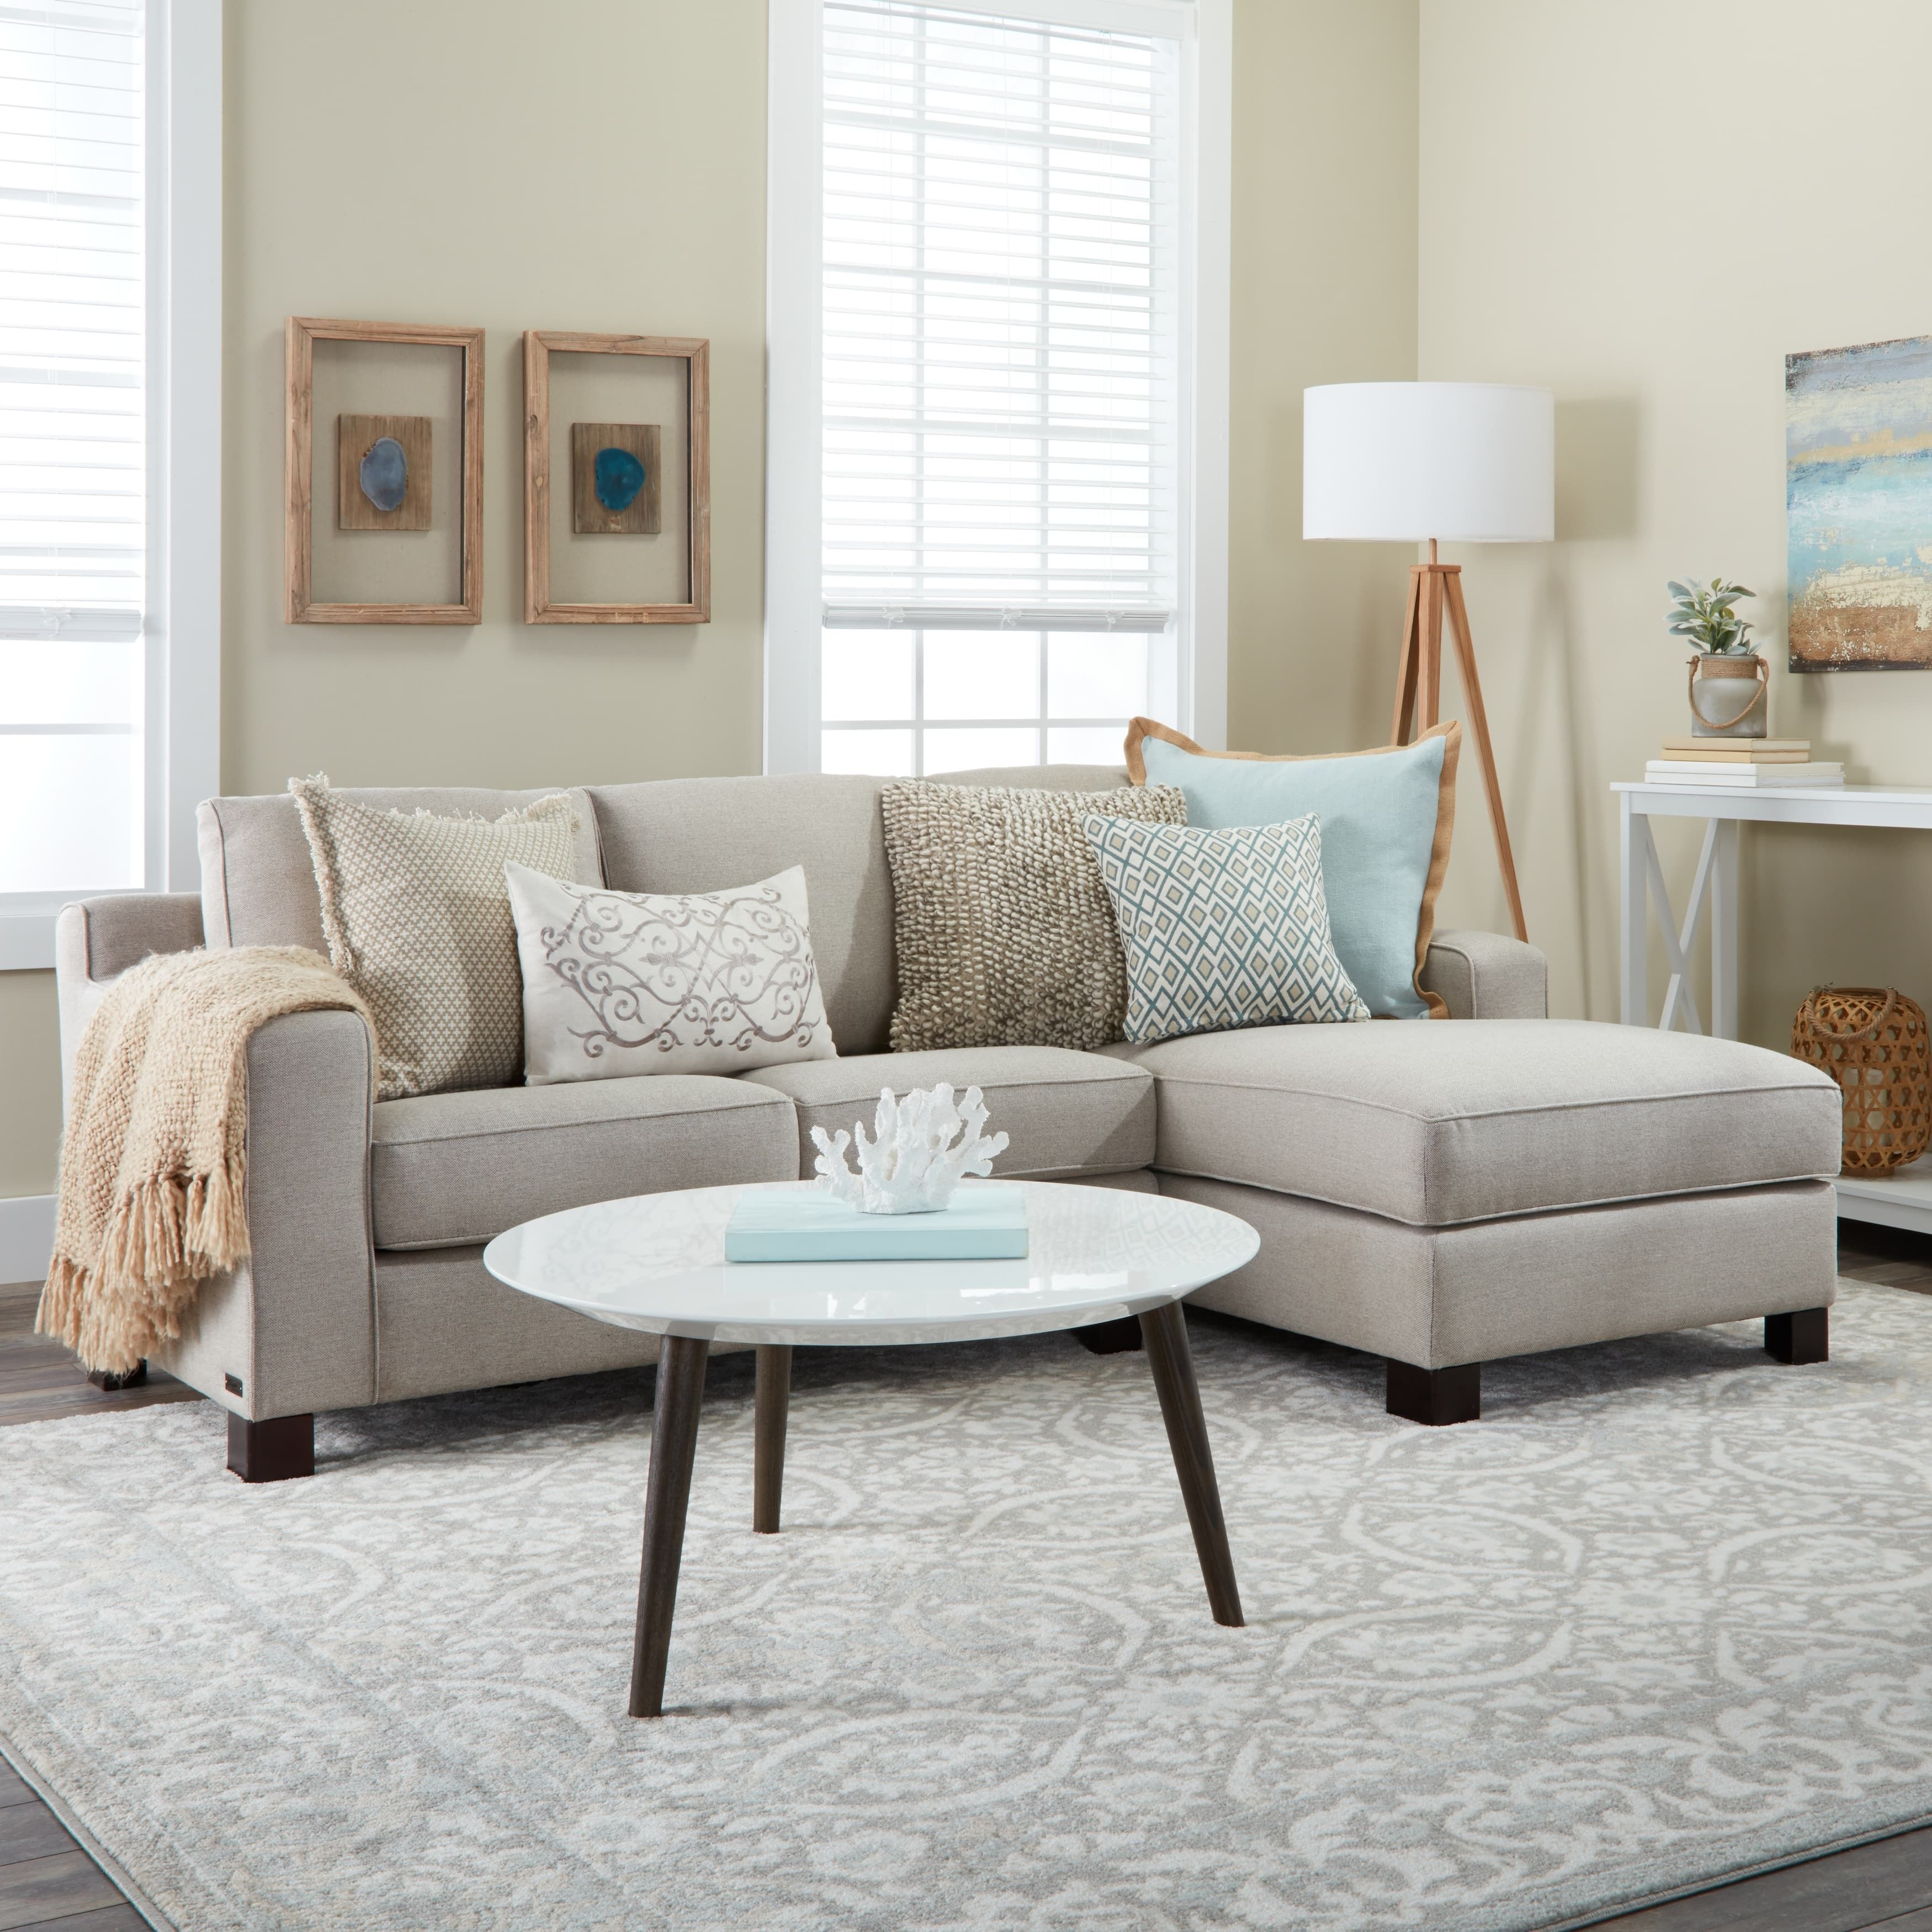 Abbyson Sectional Sofa With Chaise In Light Grey In 2020